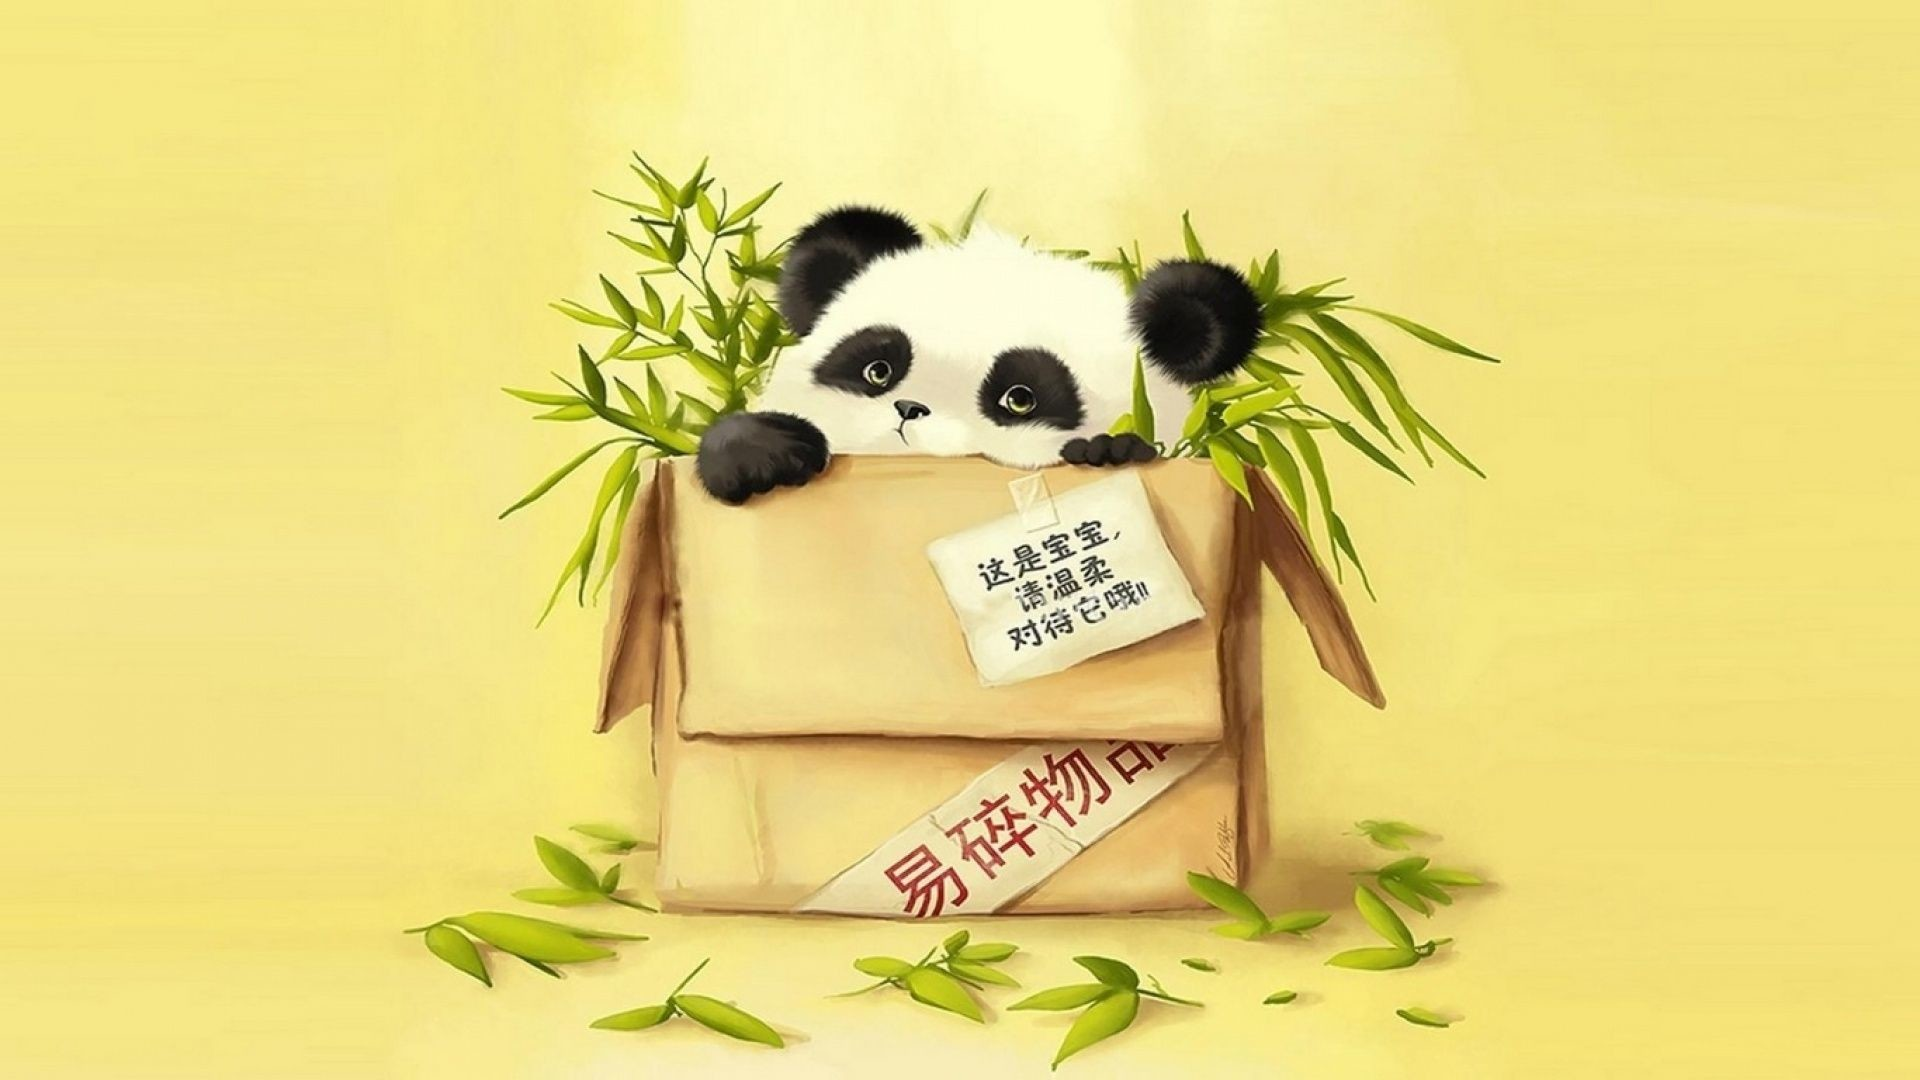 1920x1080 Cartoon Panda Wallpapers - Wallpaper Cave